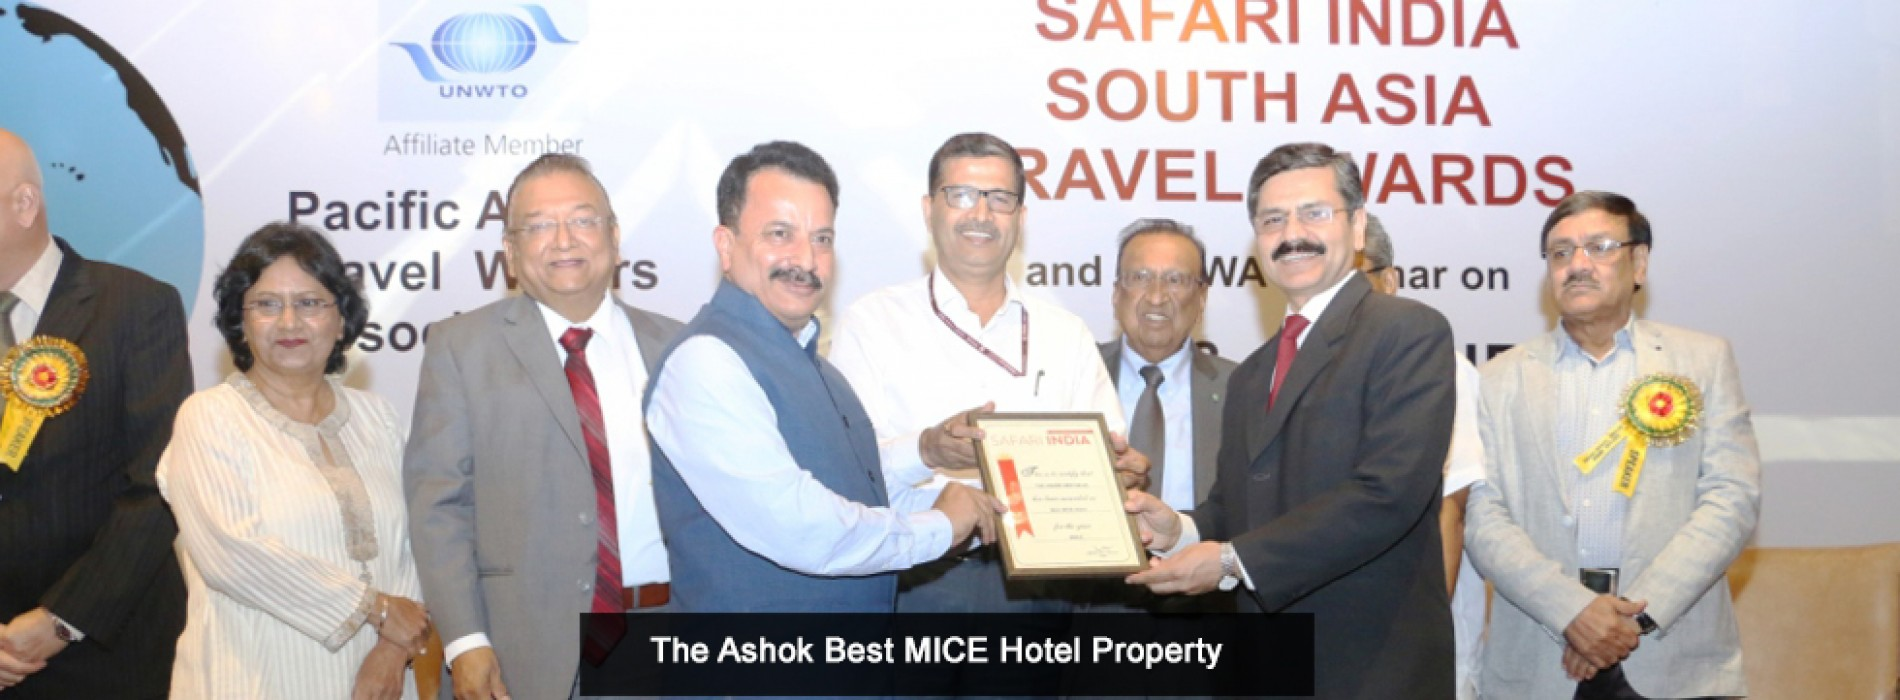 The Ashok wins best MICE hotel at Safari India South Asia Travel Awards 2017